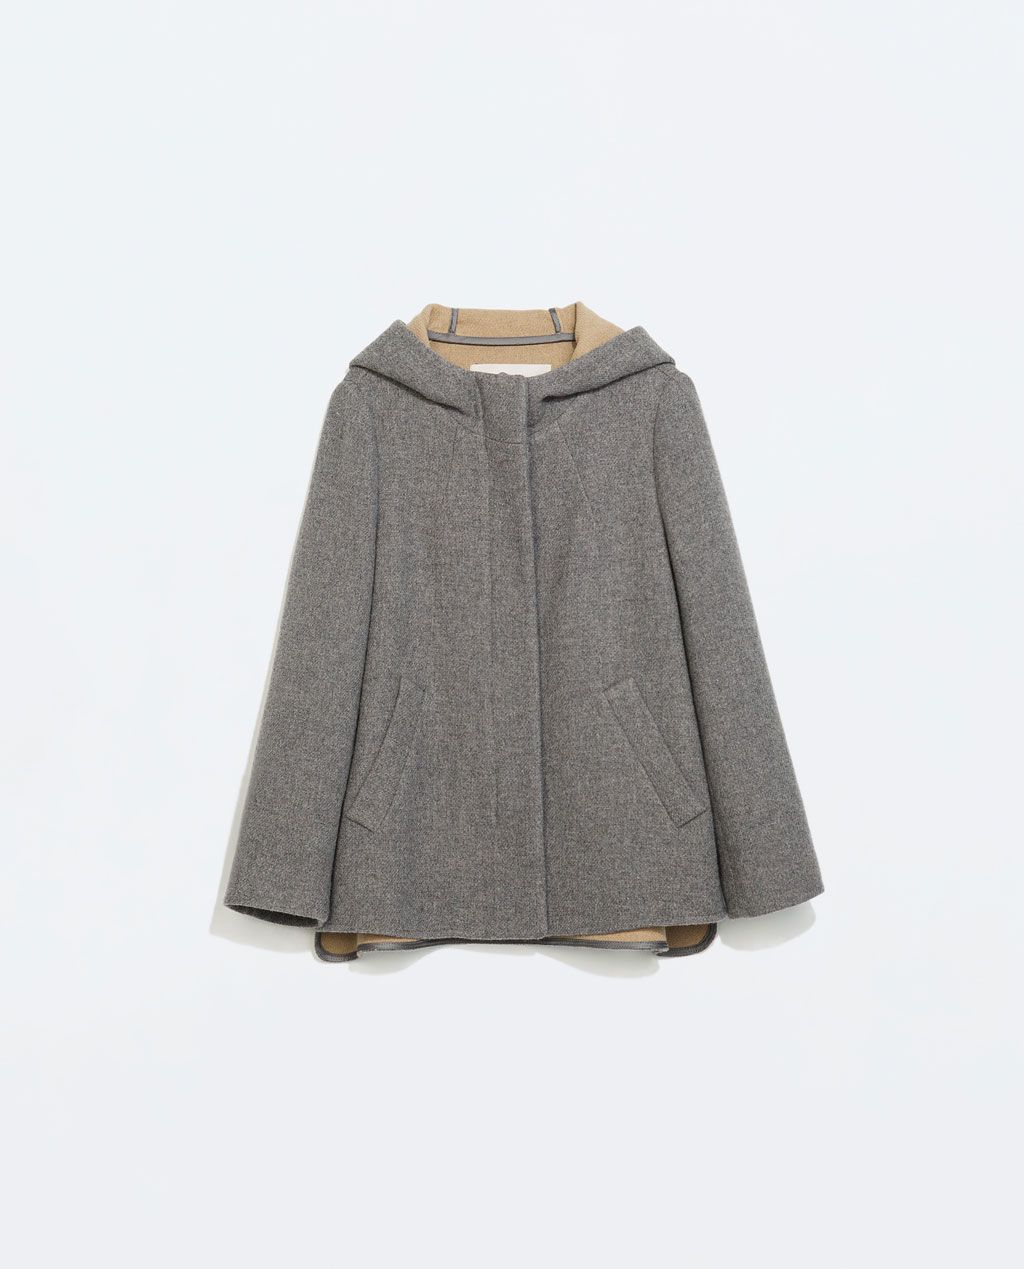 Short Wool Jacket with Hood, Grey, from Zara | Tuch